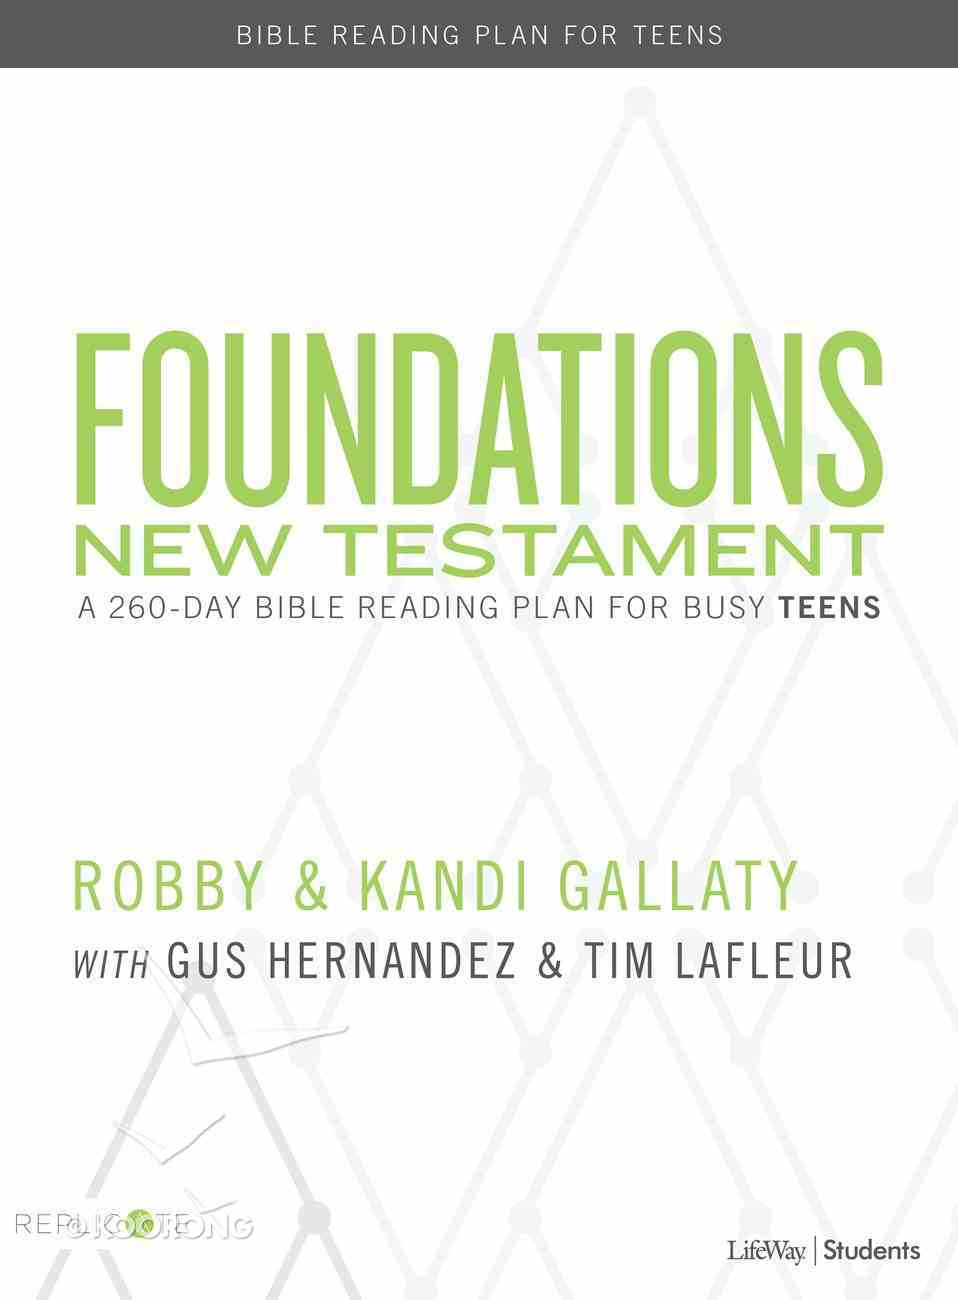 Foundations For Teens - New Testament: A 260-Day Bible Reading Plan For Busy Teens Paperback